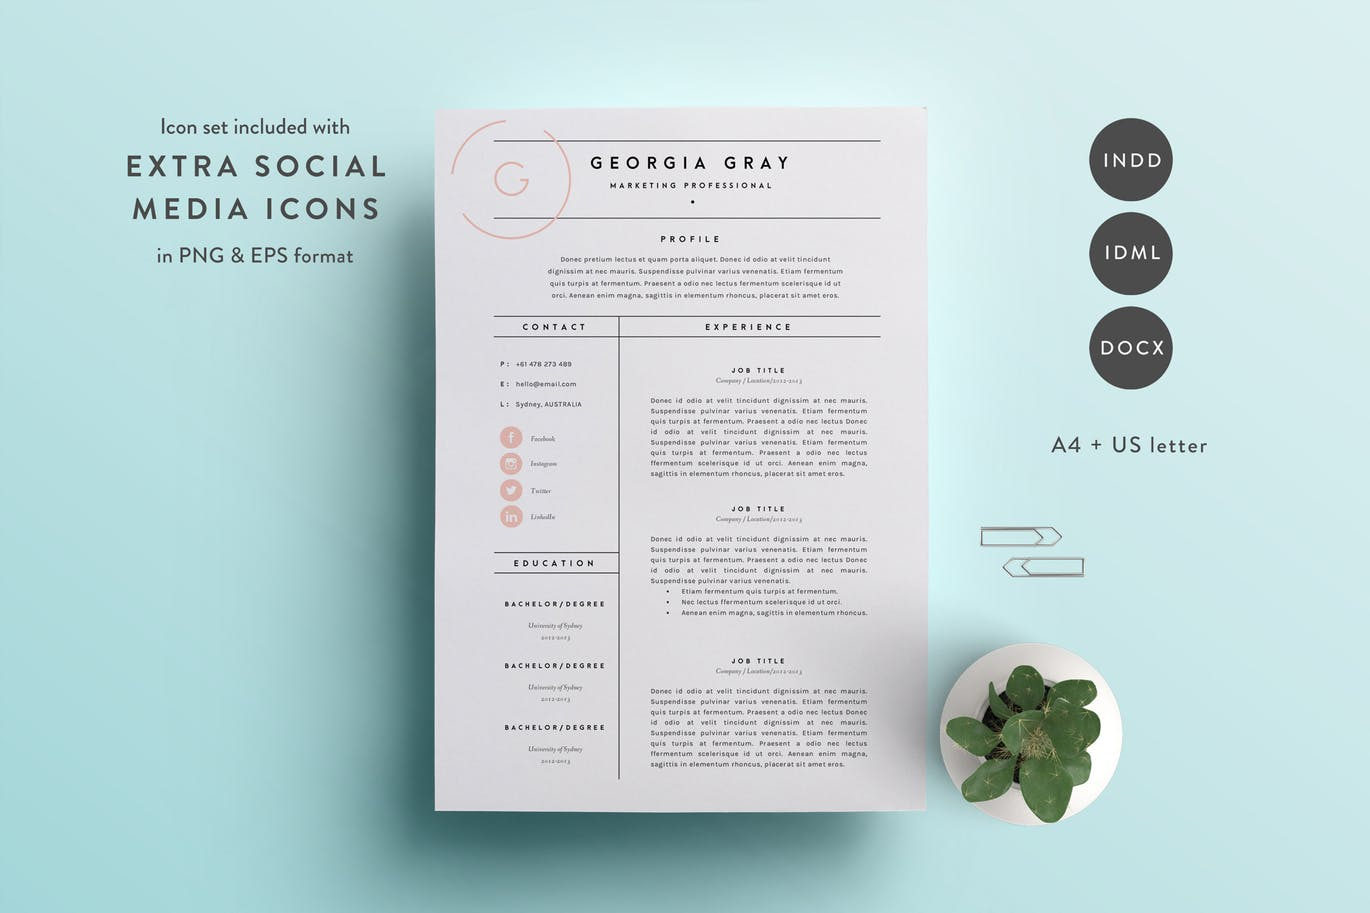 Superior This Resume Template Is Available In Both A4 And US Letter Sizes. It  Includes A 2 Page Resume Template And A Cover Letter Template.